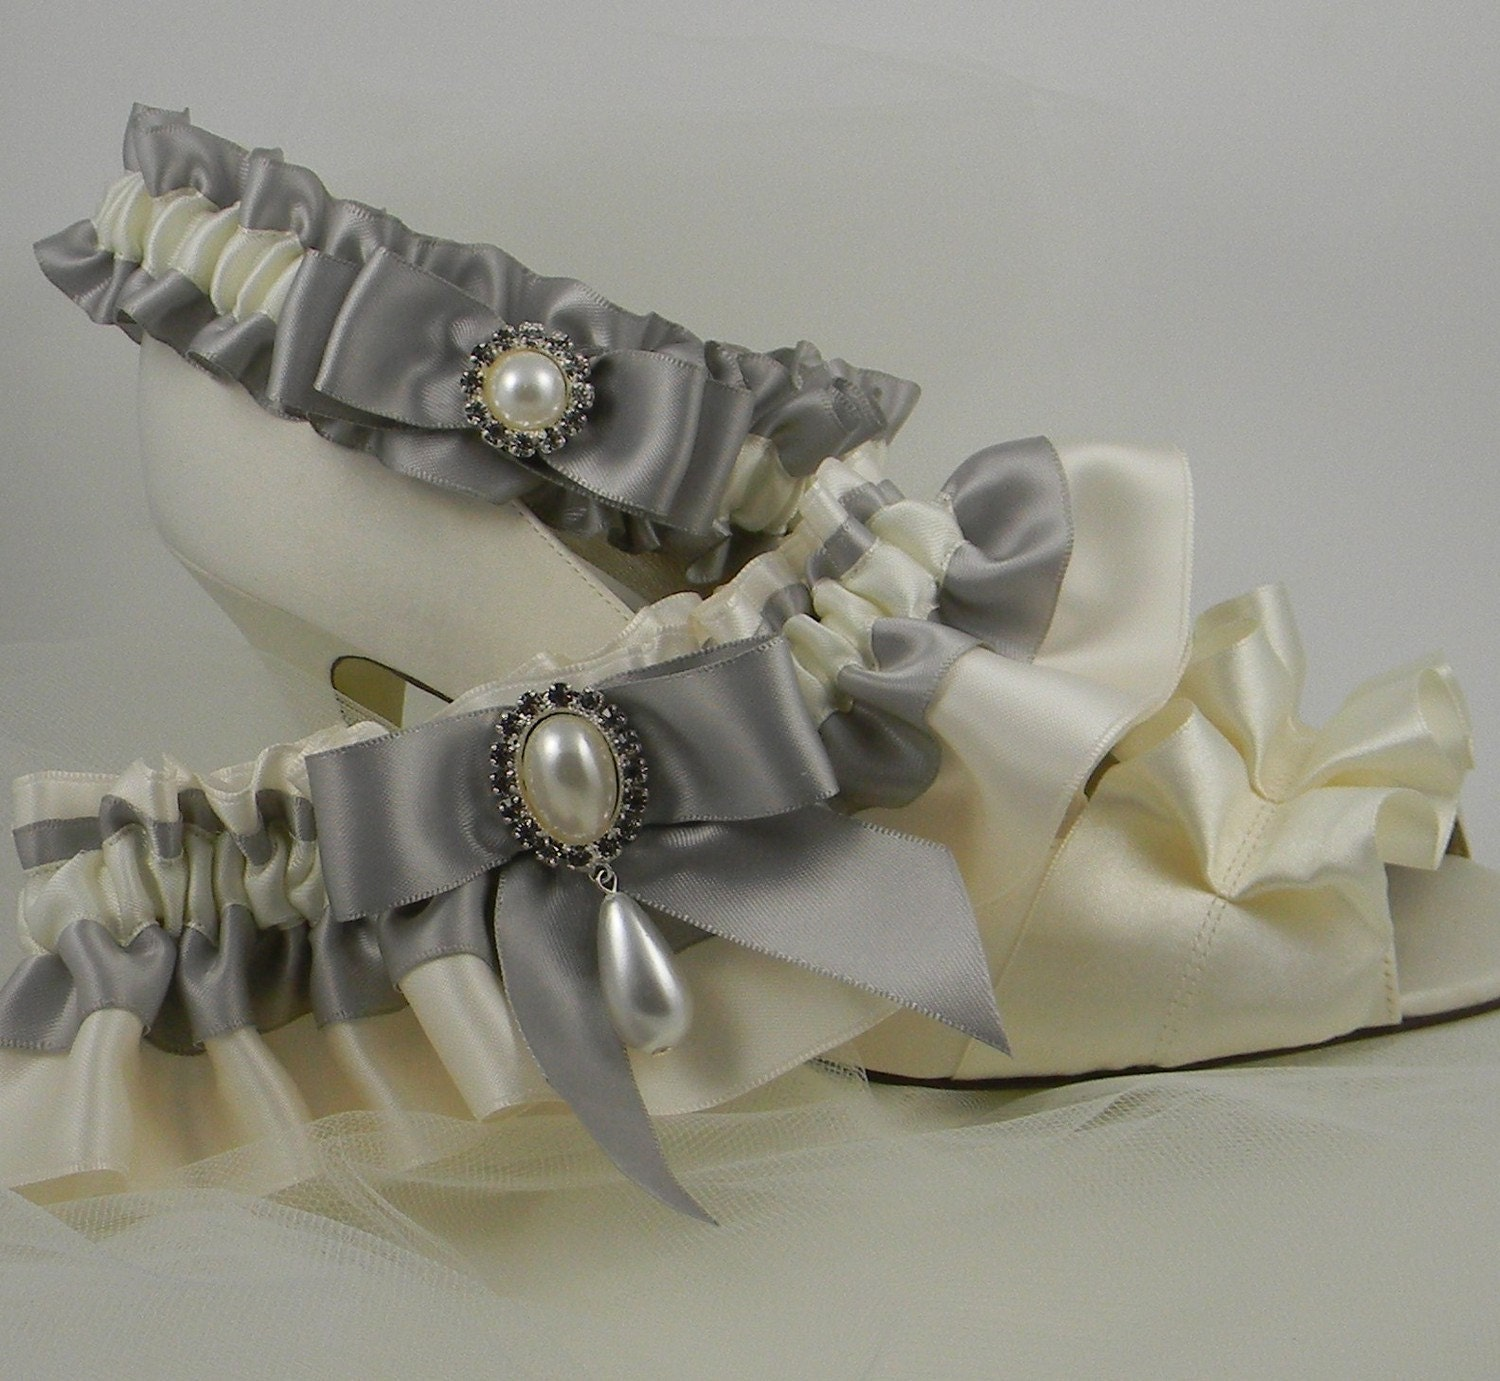 Bridal Garters, Toss and Keep, Satin, Ivory and platinum, Pearl/rhinestone drop embellishment